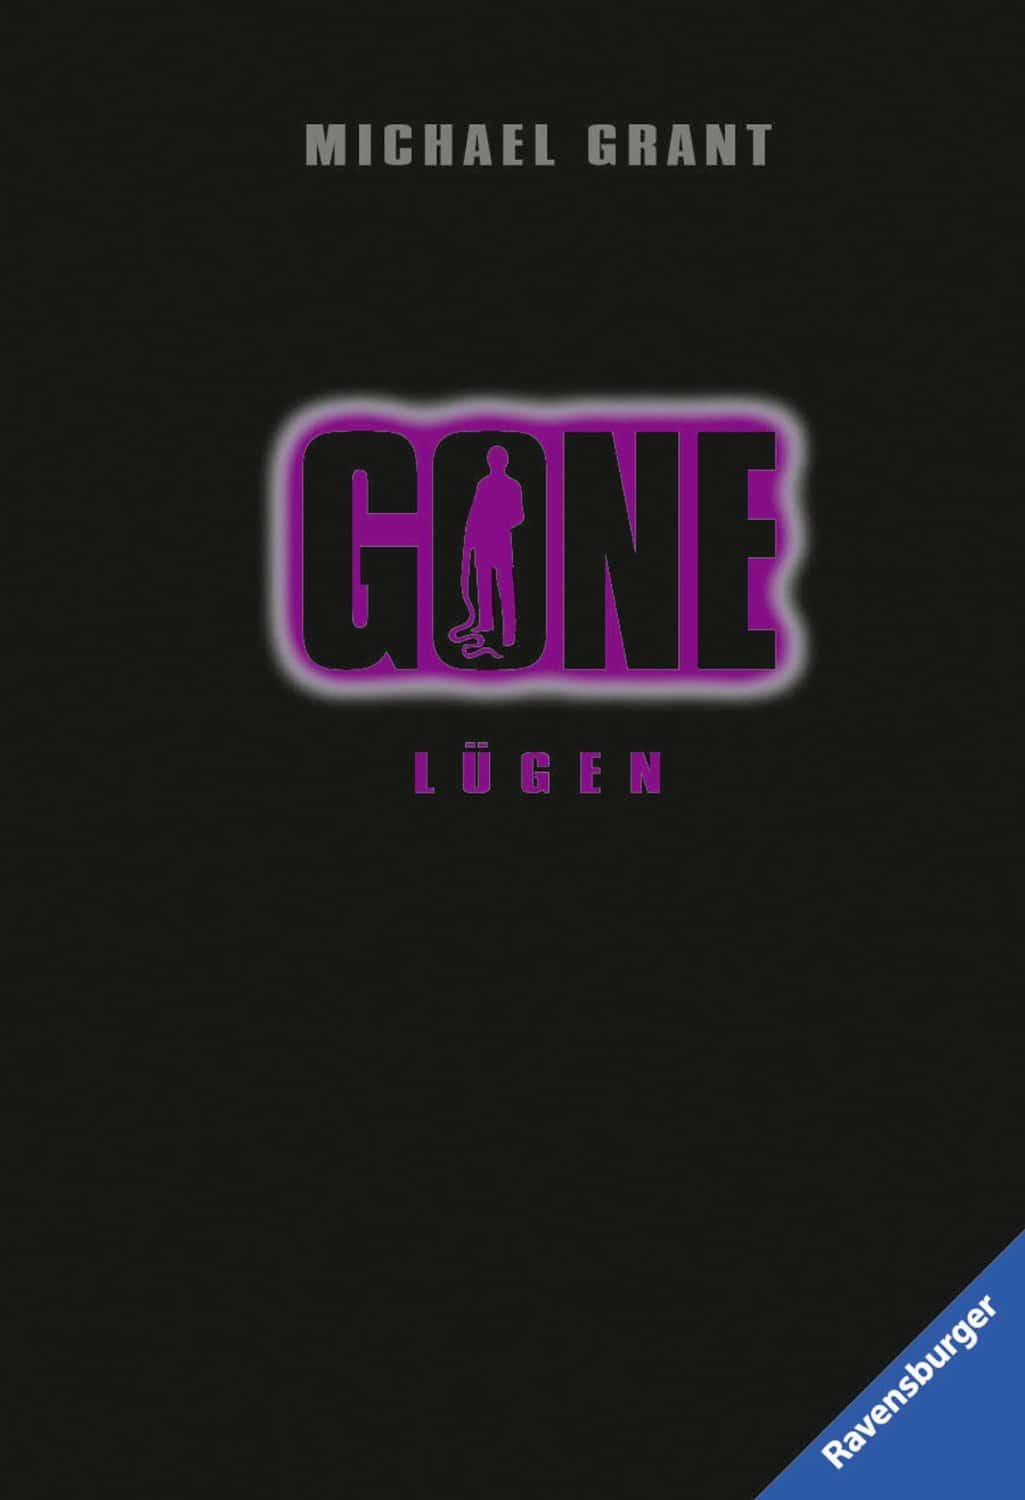 Michael Grant: Gone 3 (Lügen/Lies)